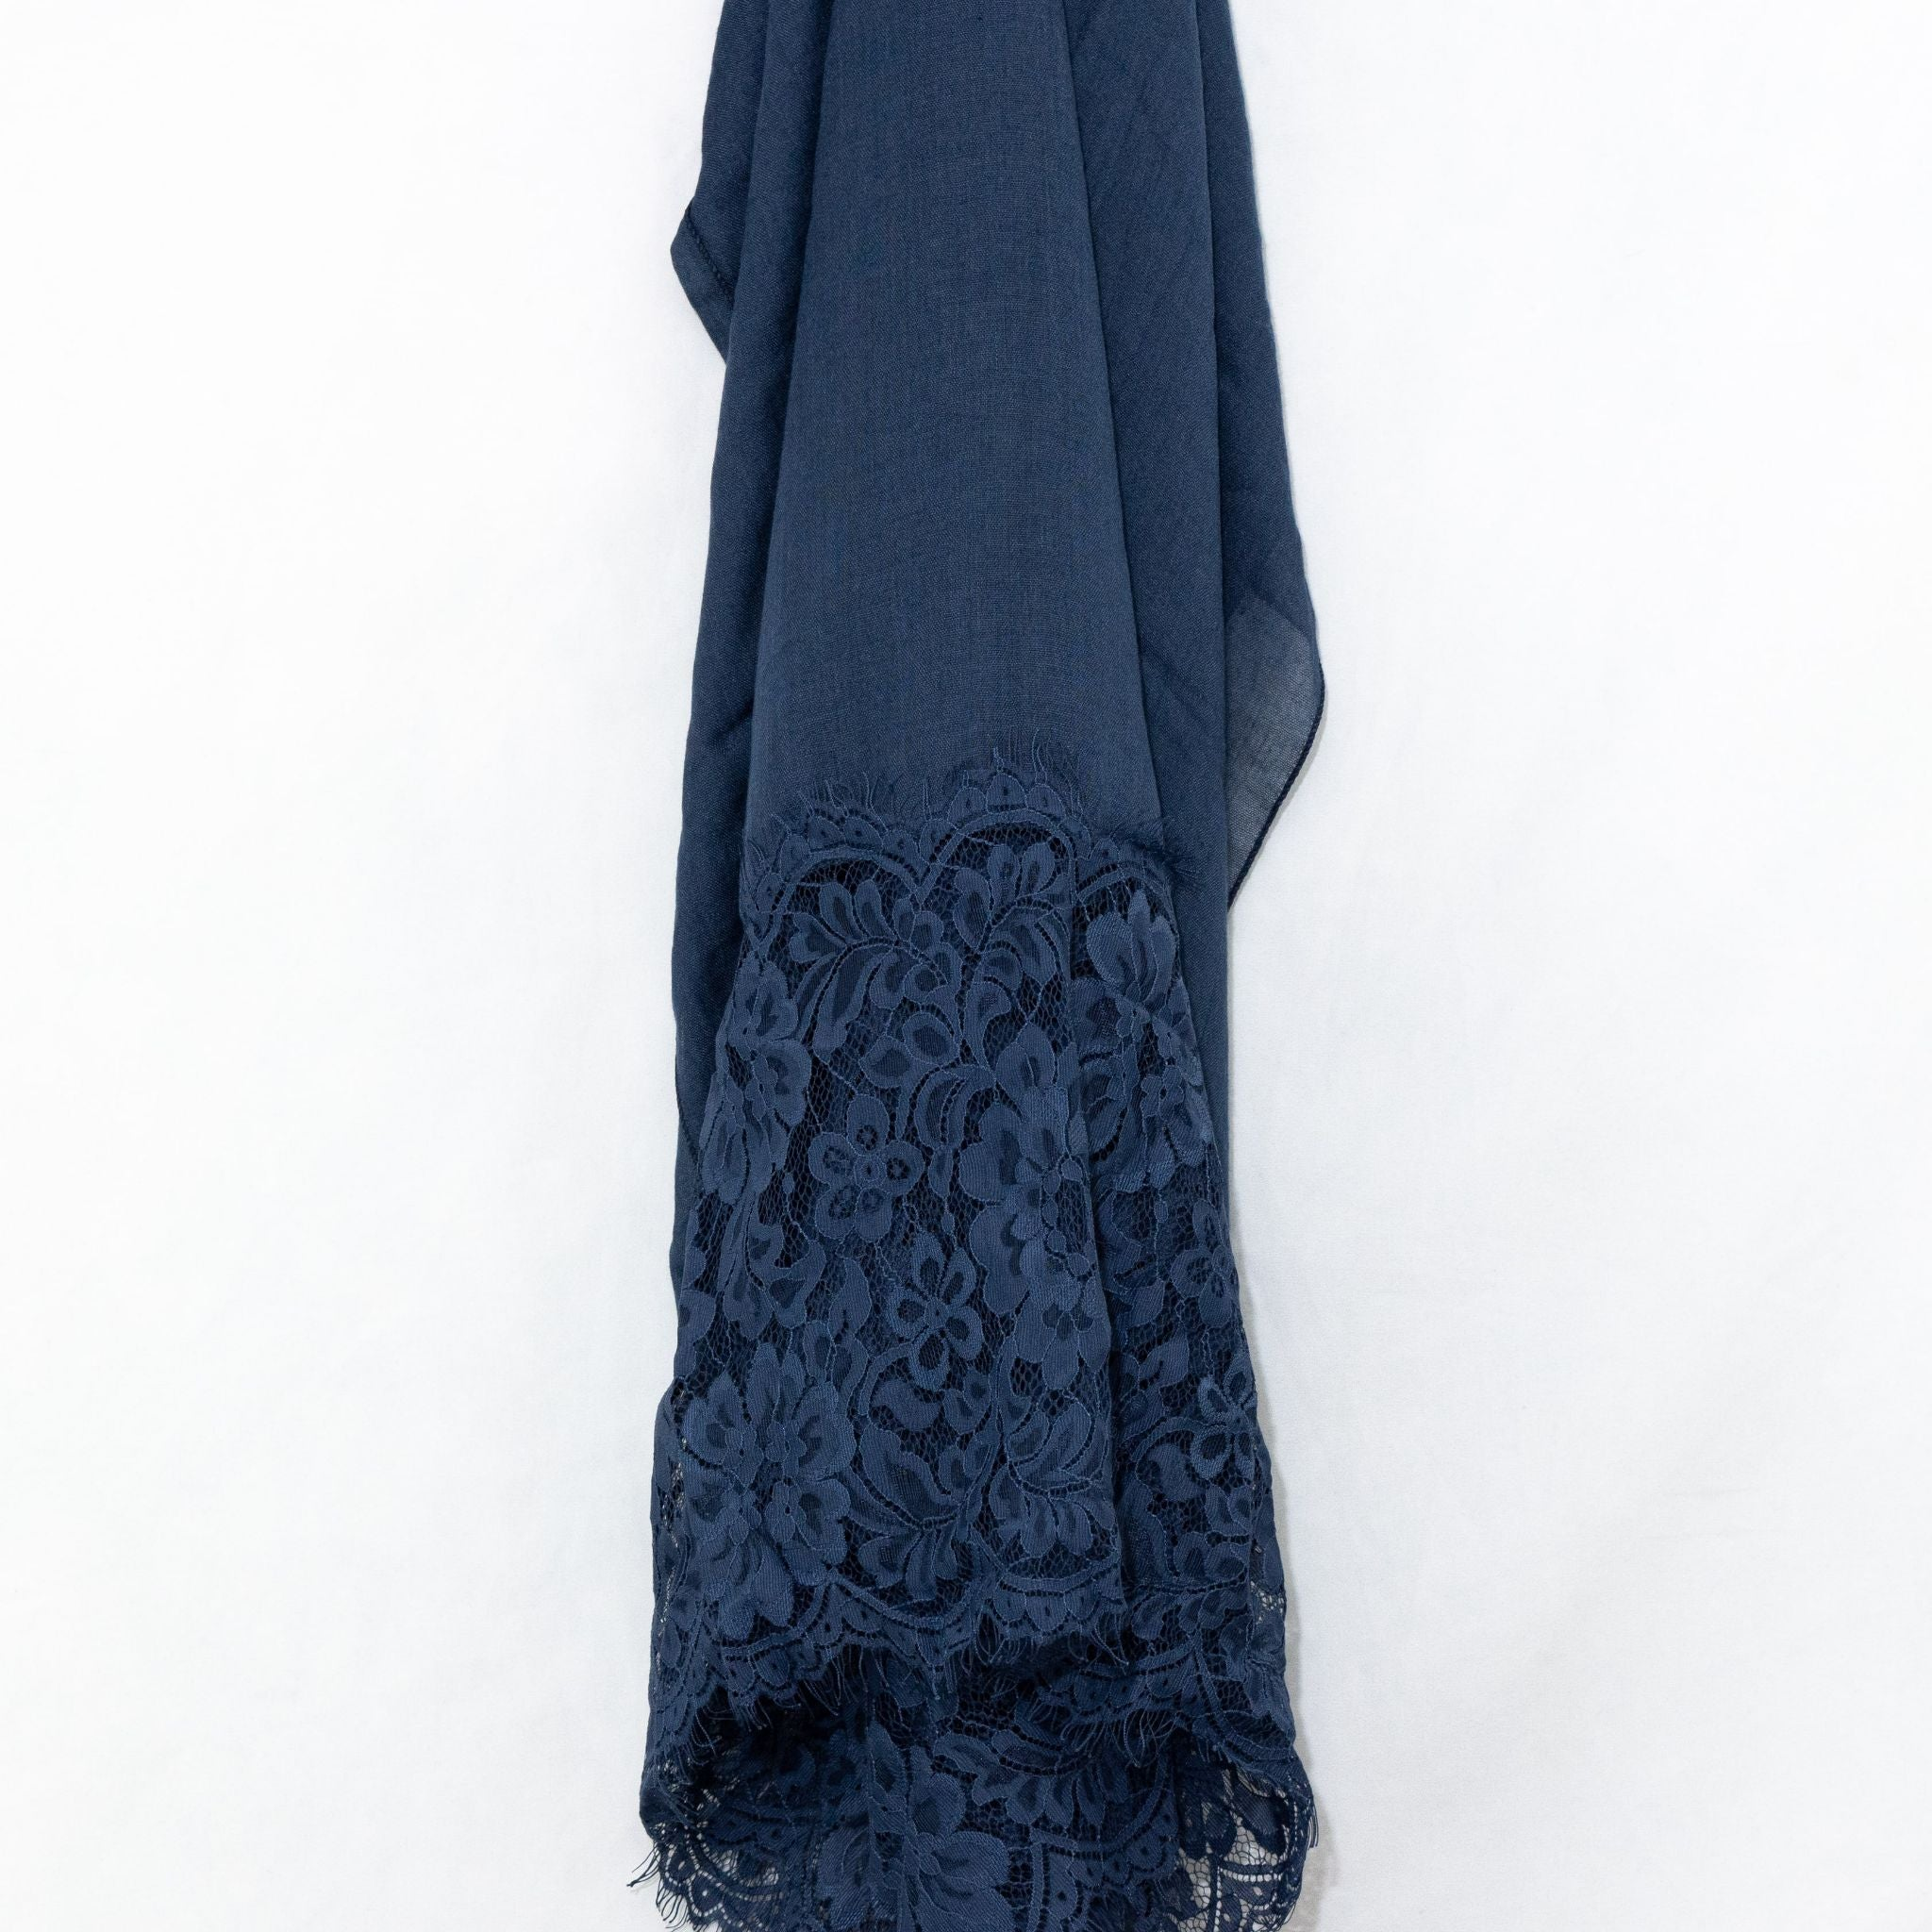 Persian Blue Premium Lace Cotton Viscose Hijab